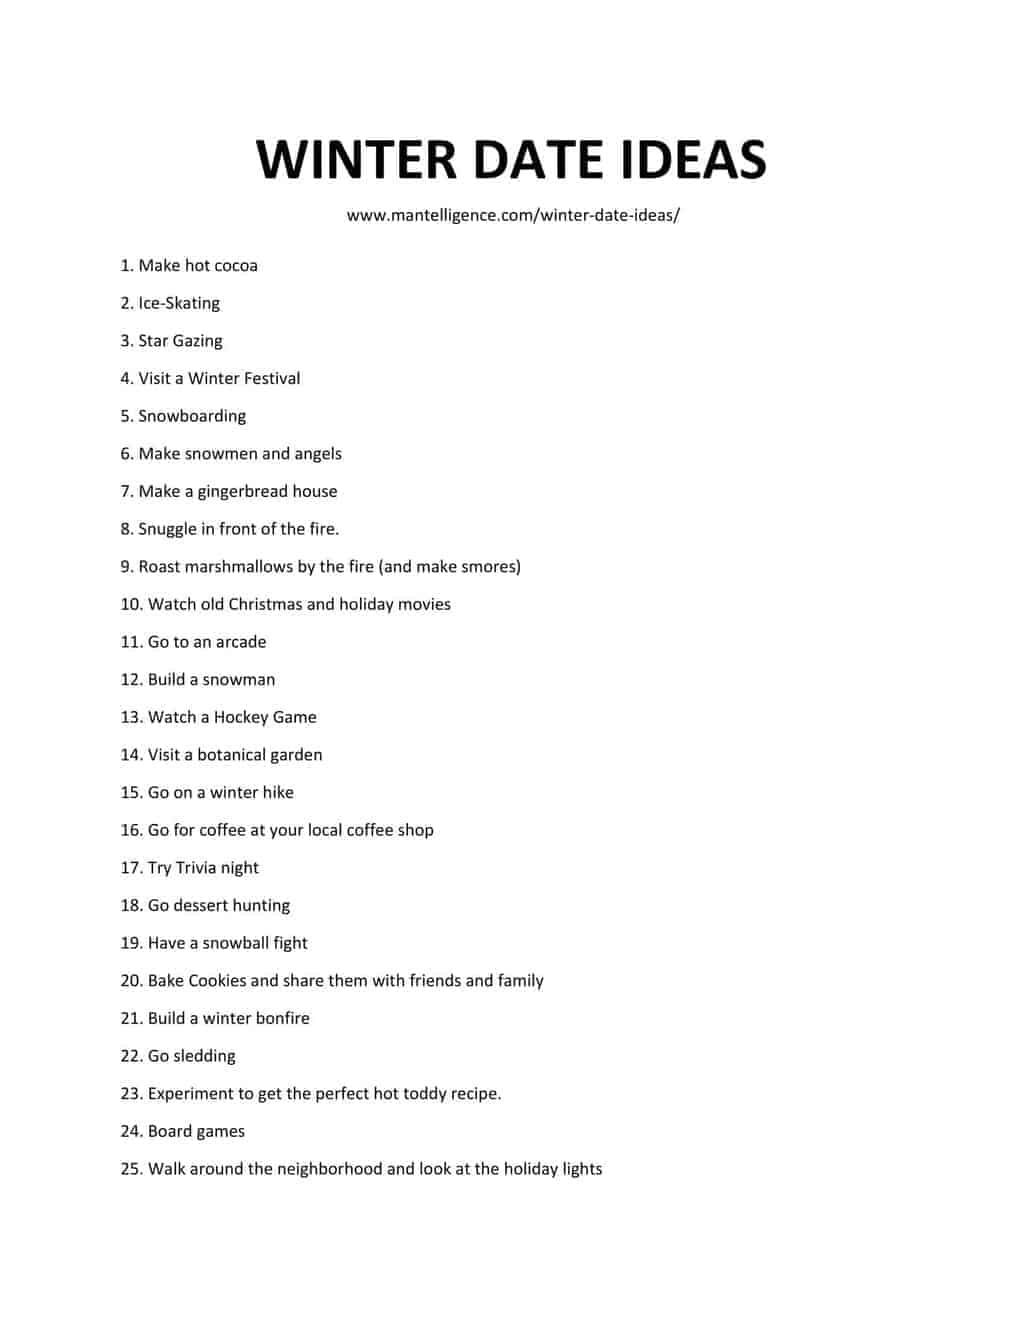 list of WINTER DATE IDEAS